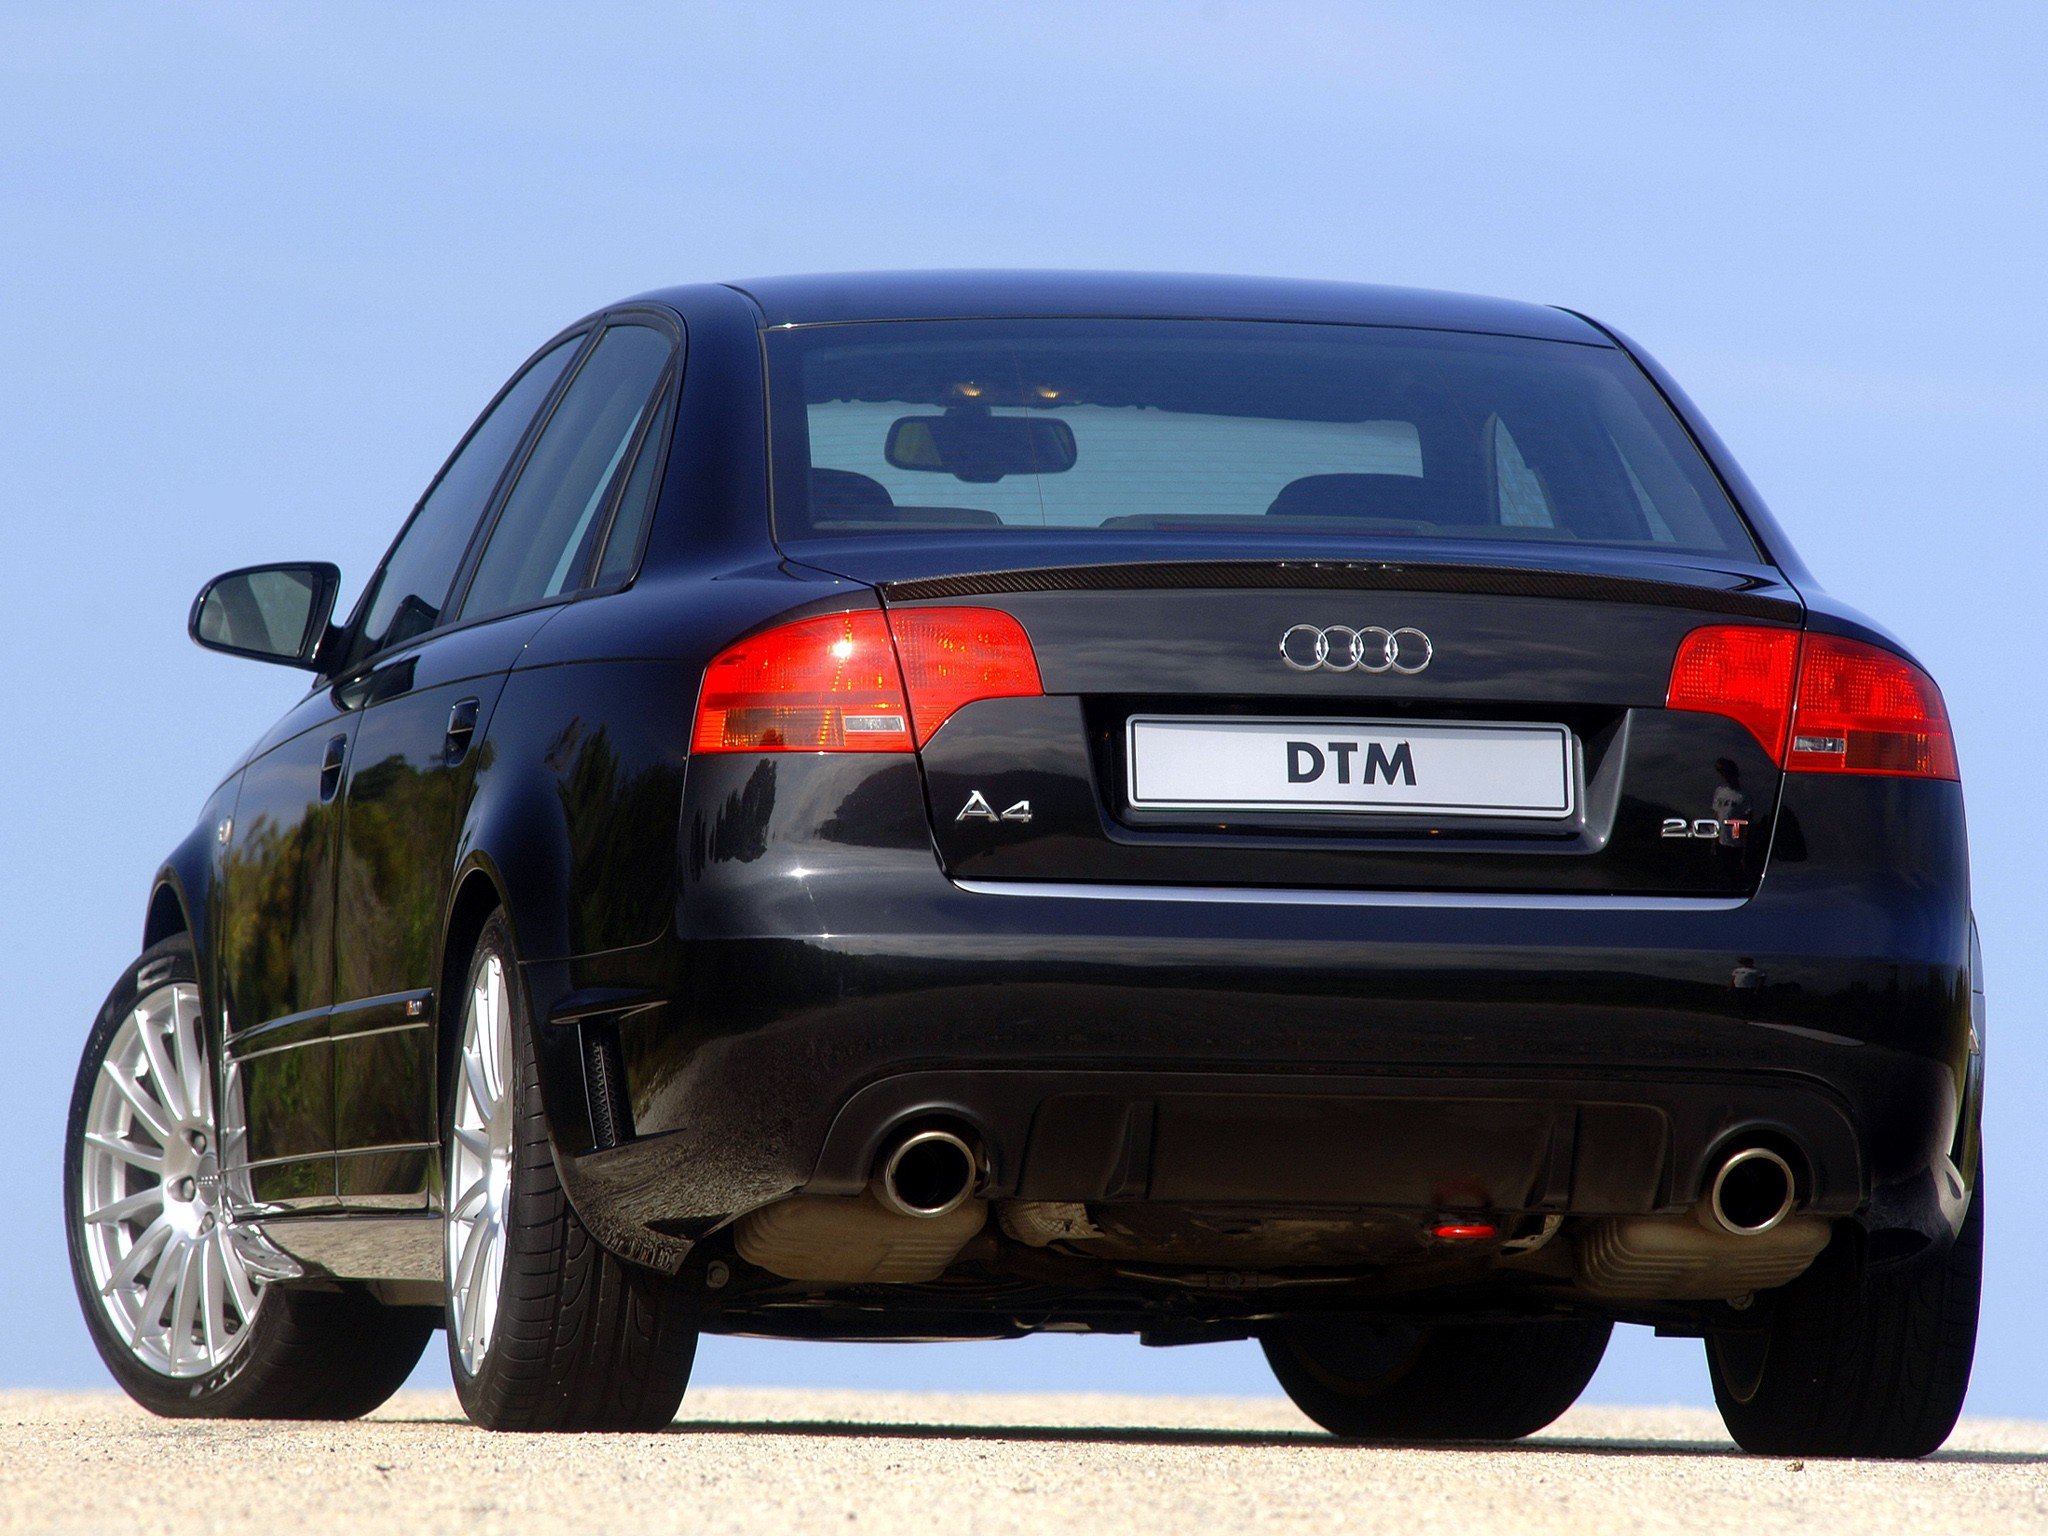 Audi A4 Dtm Edition Specs Amp Photos 2005 2006 2007 Autoevolution